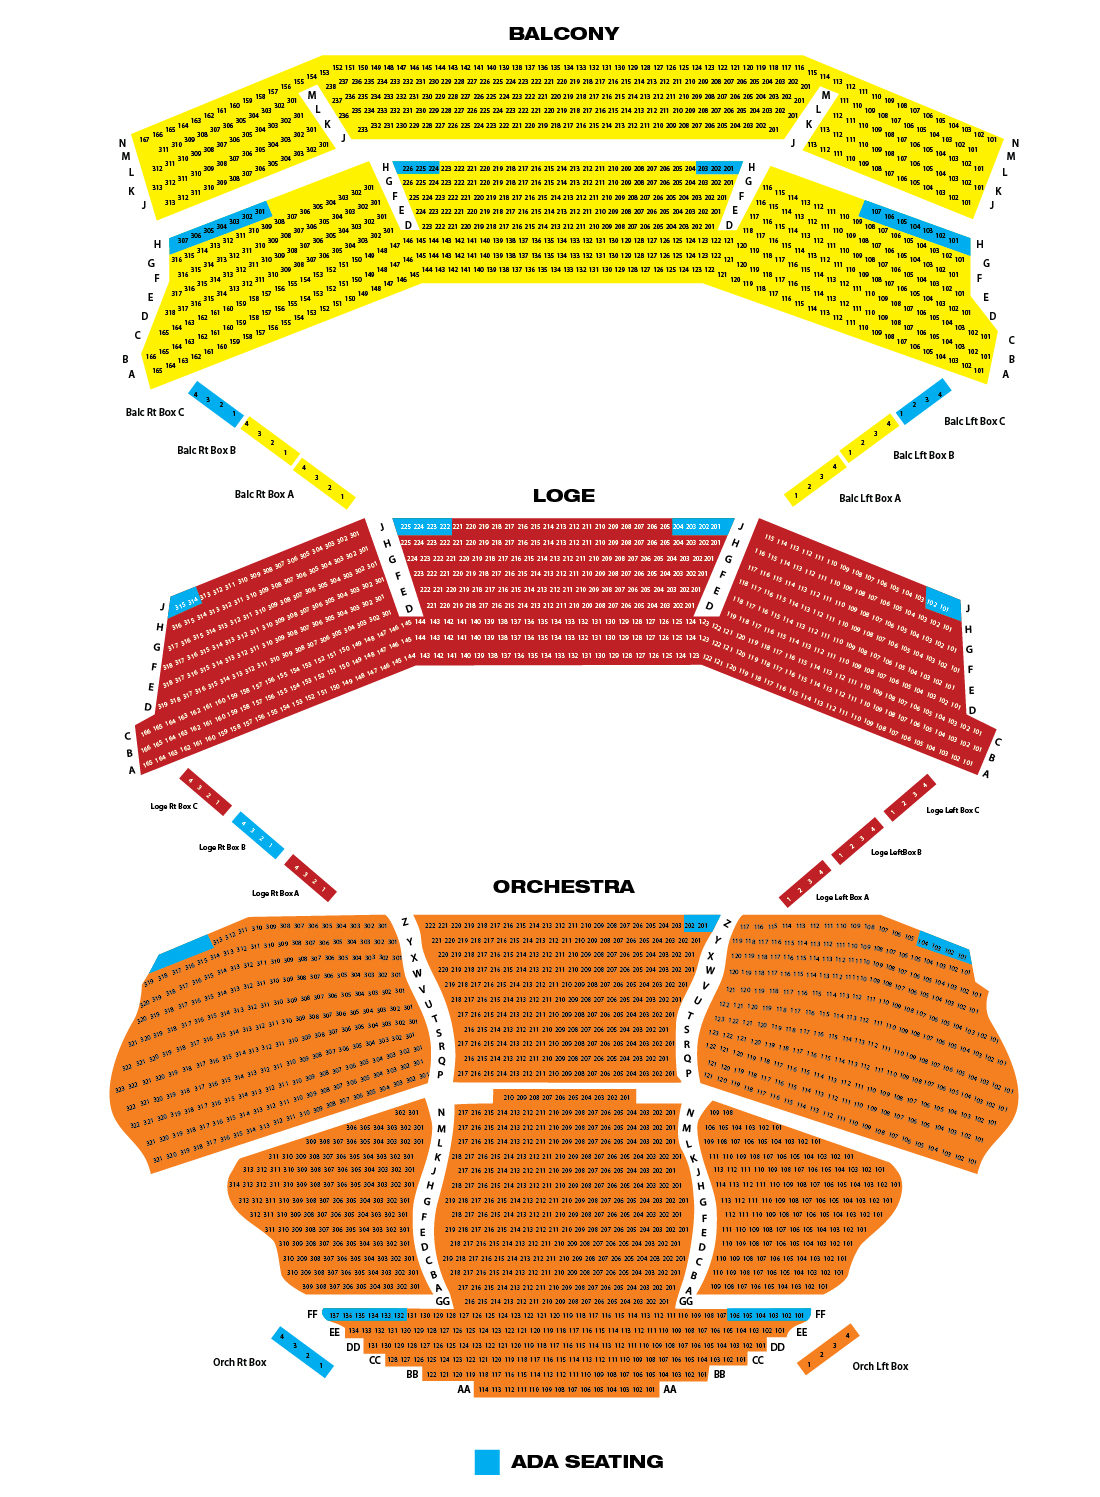 Seating chart for Aronoff Center